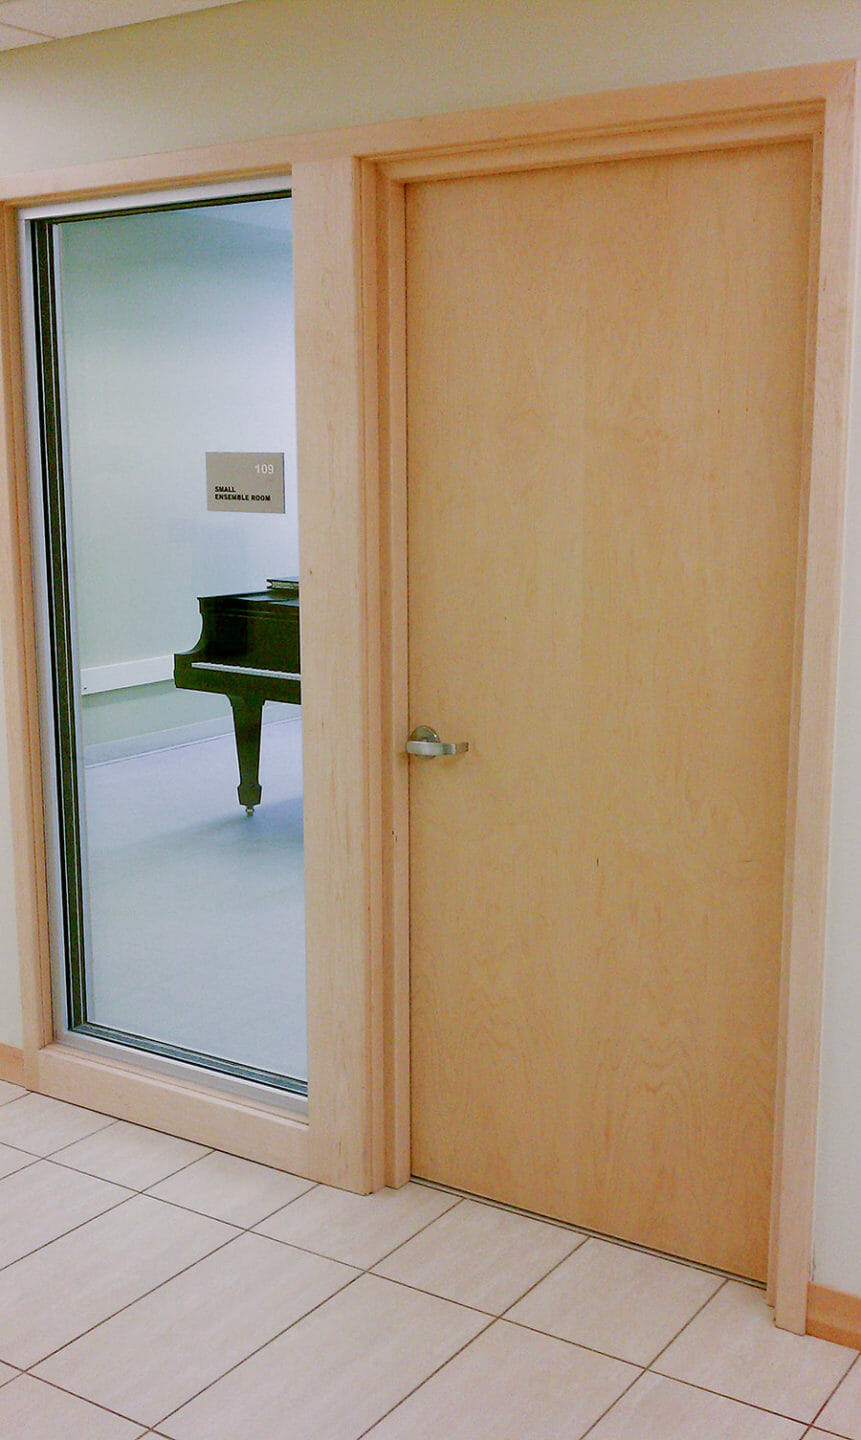 Studio Soundproofing Doors For Recording Studios Acoustical Surfaces